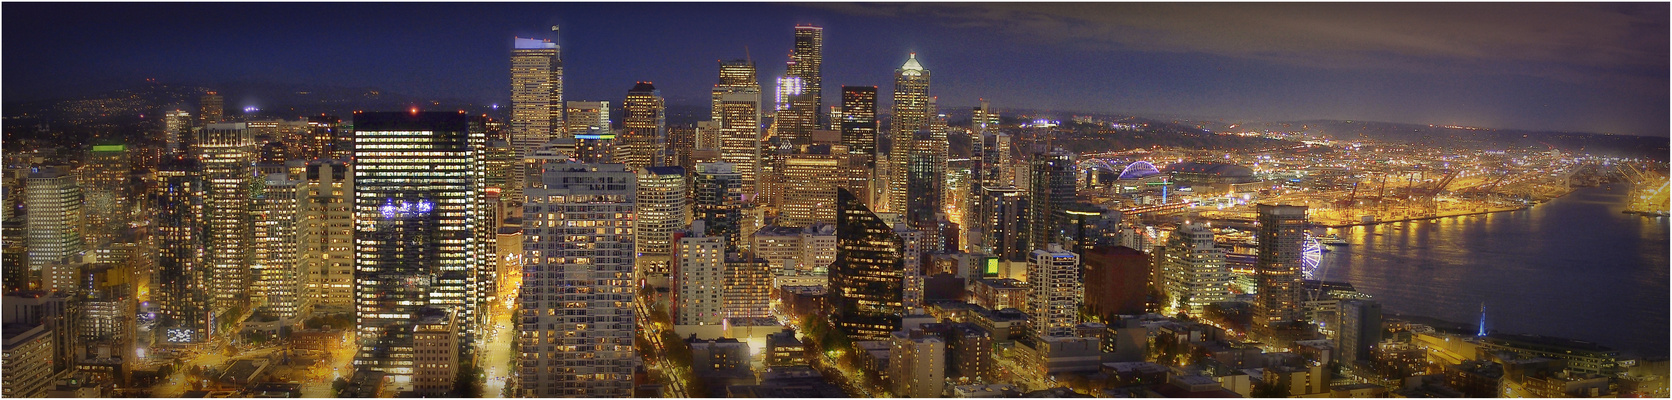 Seattle - Space Needle View